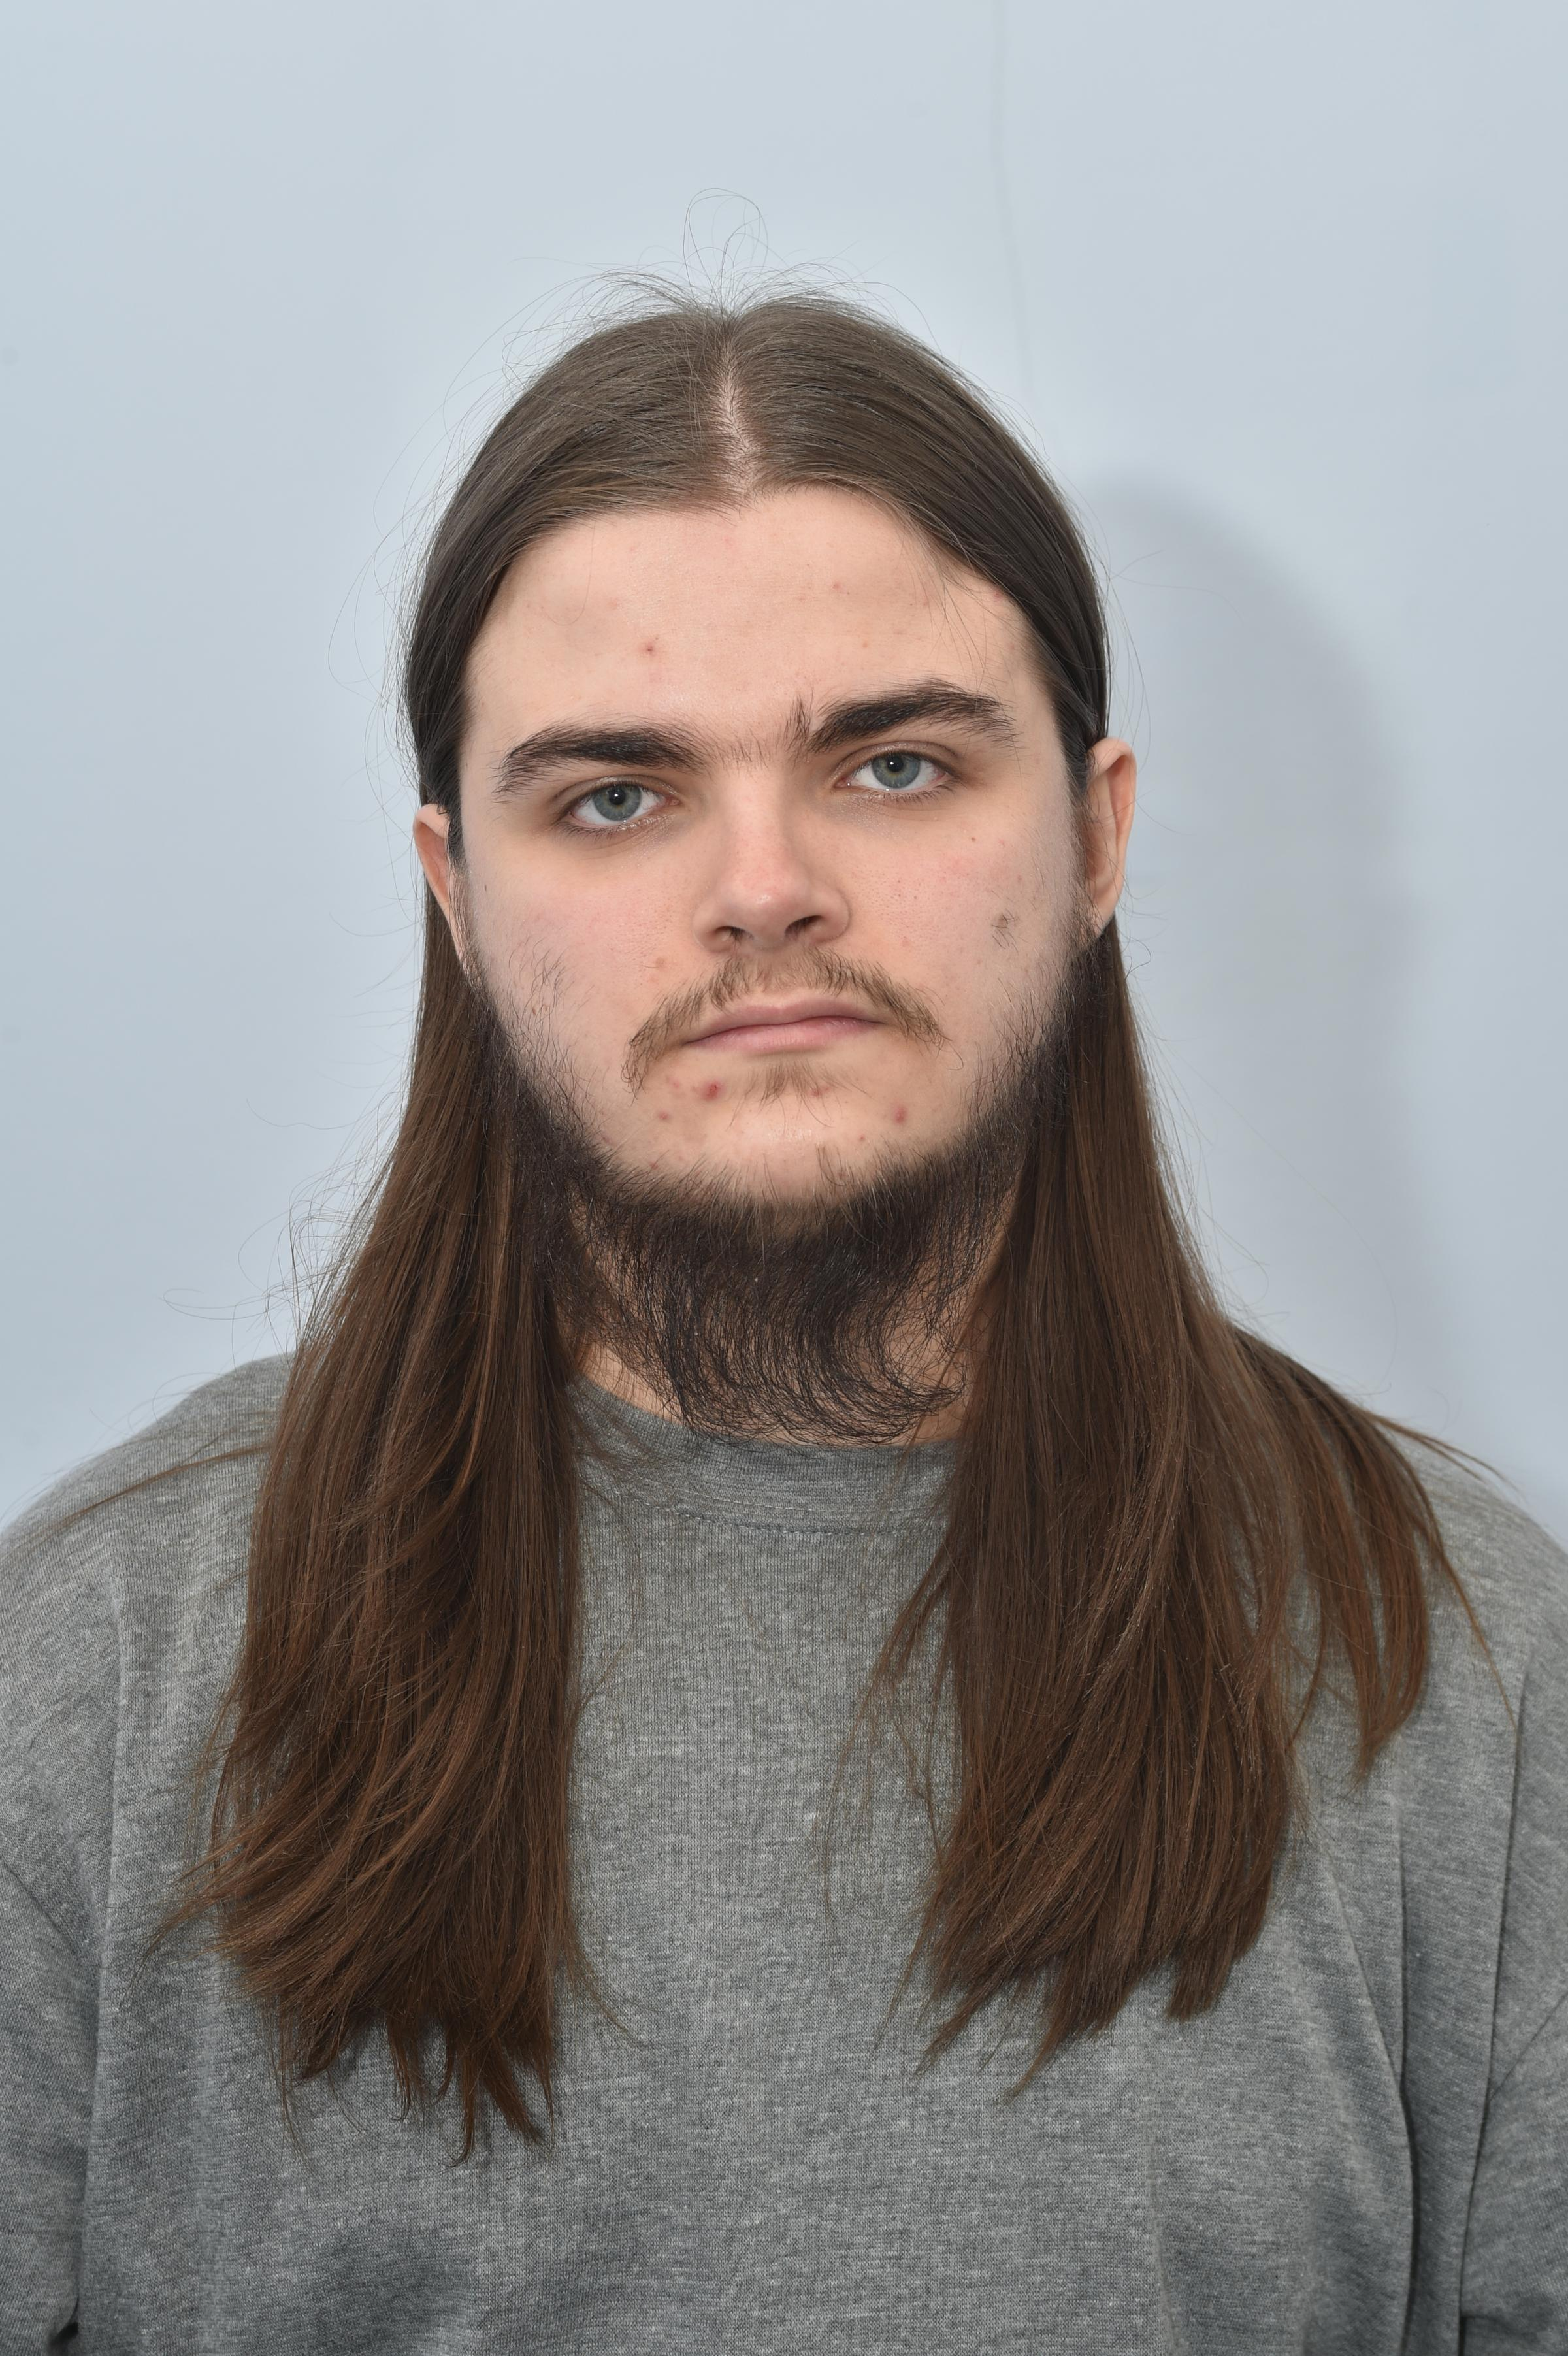 Wigan Student Jailed For Terrorism Offences Leigh Journal